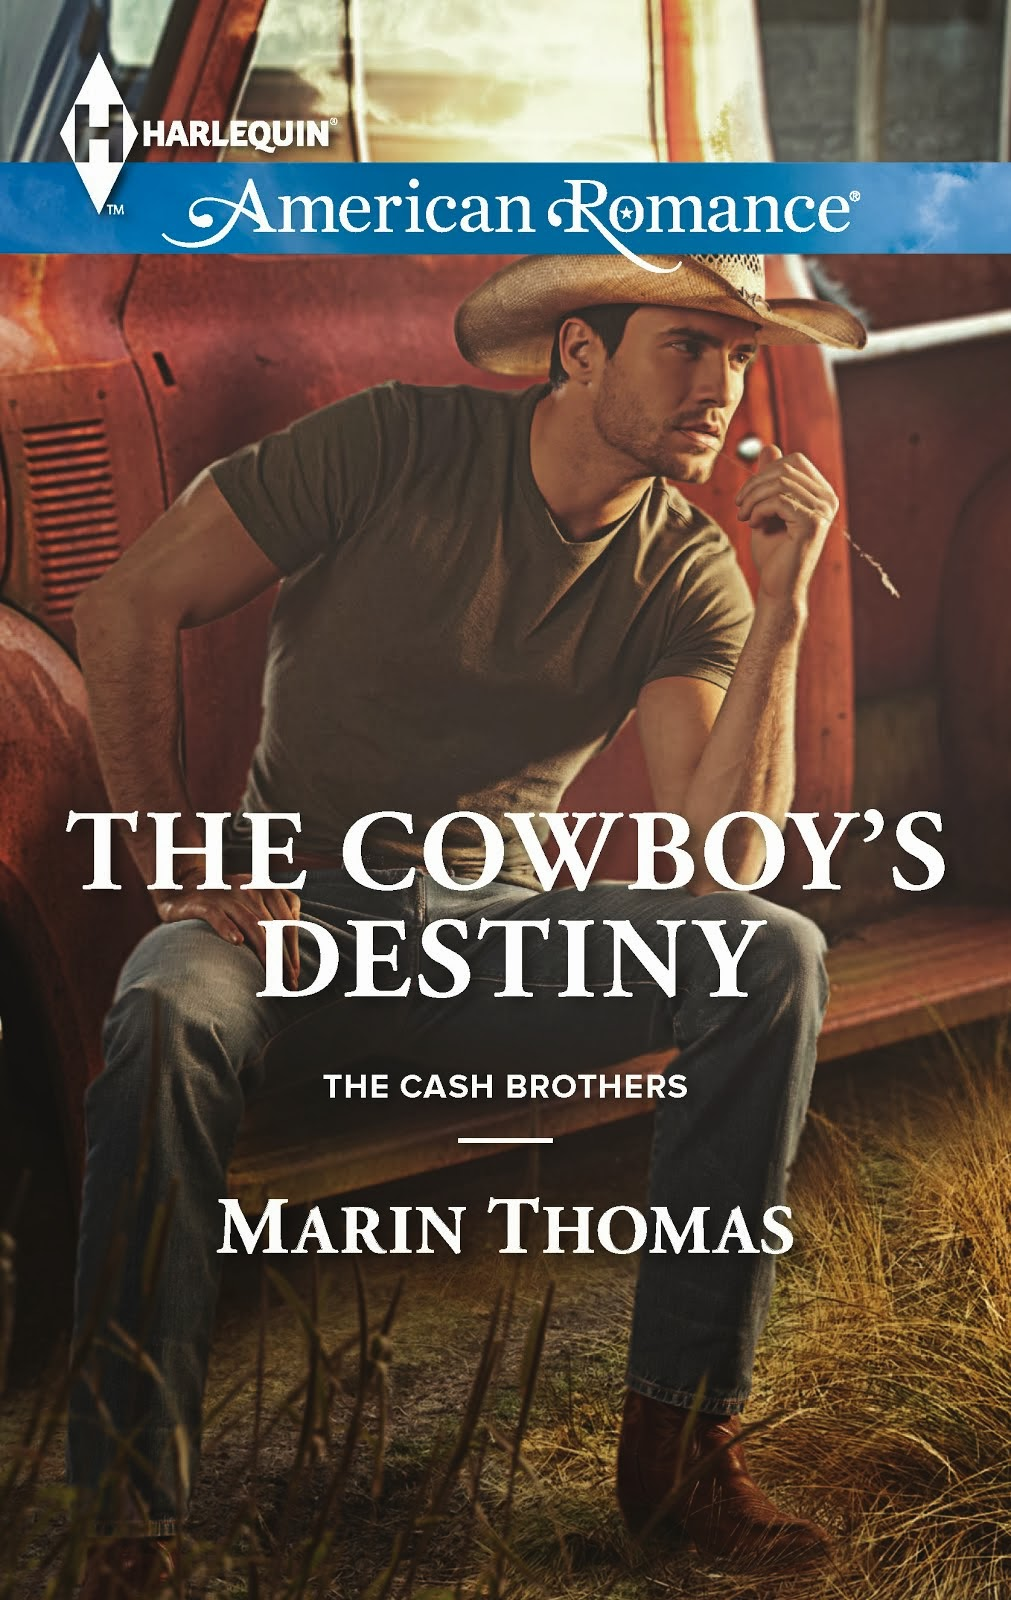 UP NEXT FROM AUTHOR MARIN THOMAS